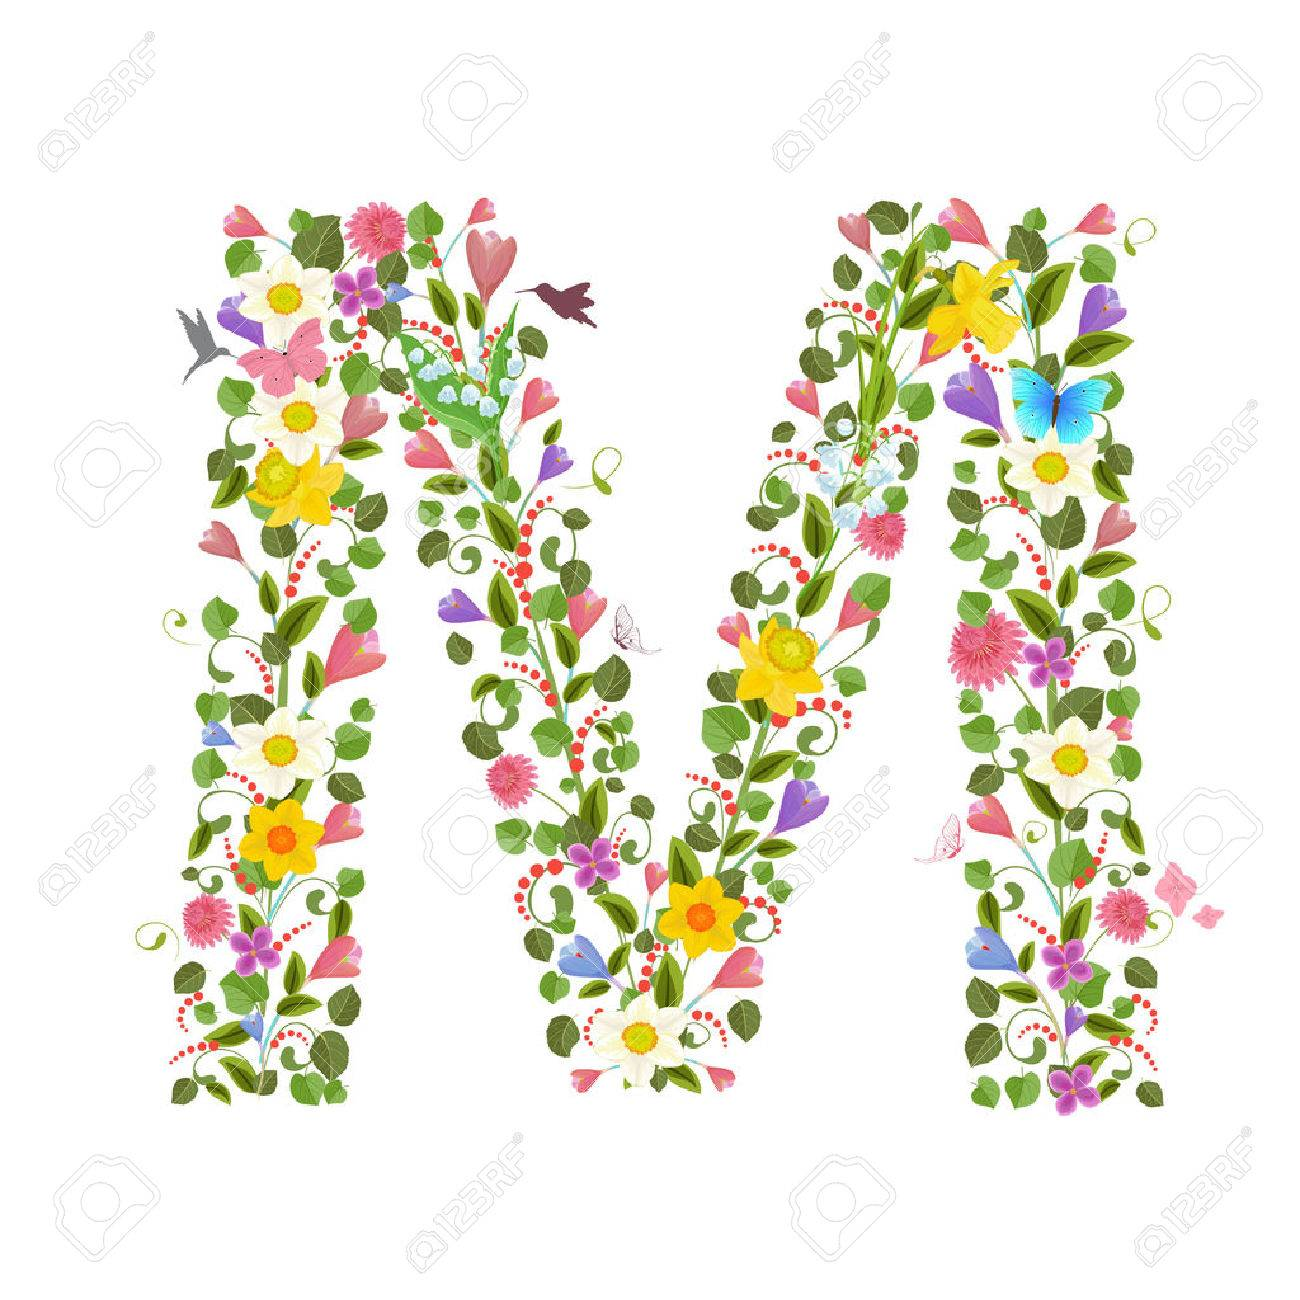 ornate capital letter font consisting of the spring flowers and flying hummingbirds. floral letter m - 58922952